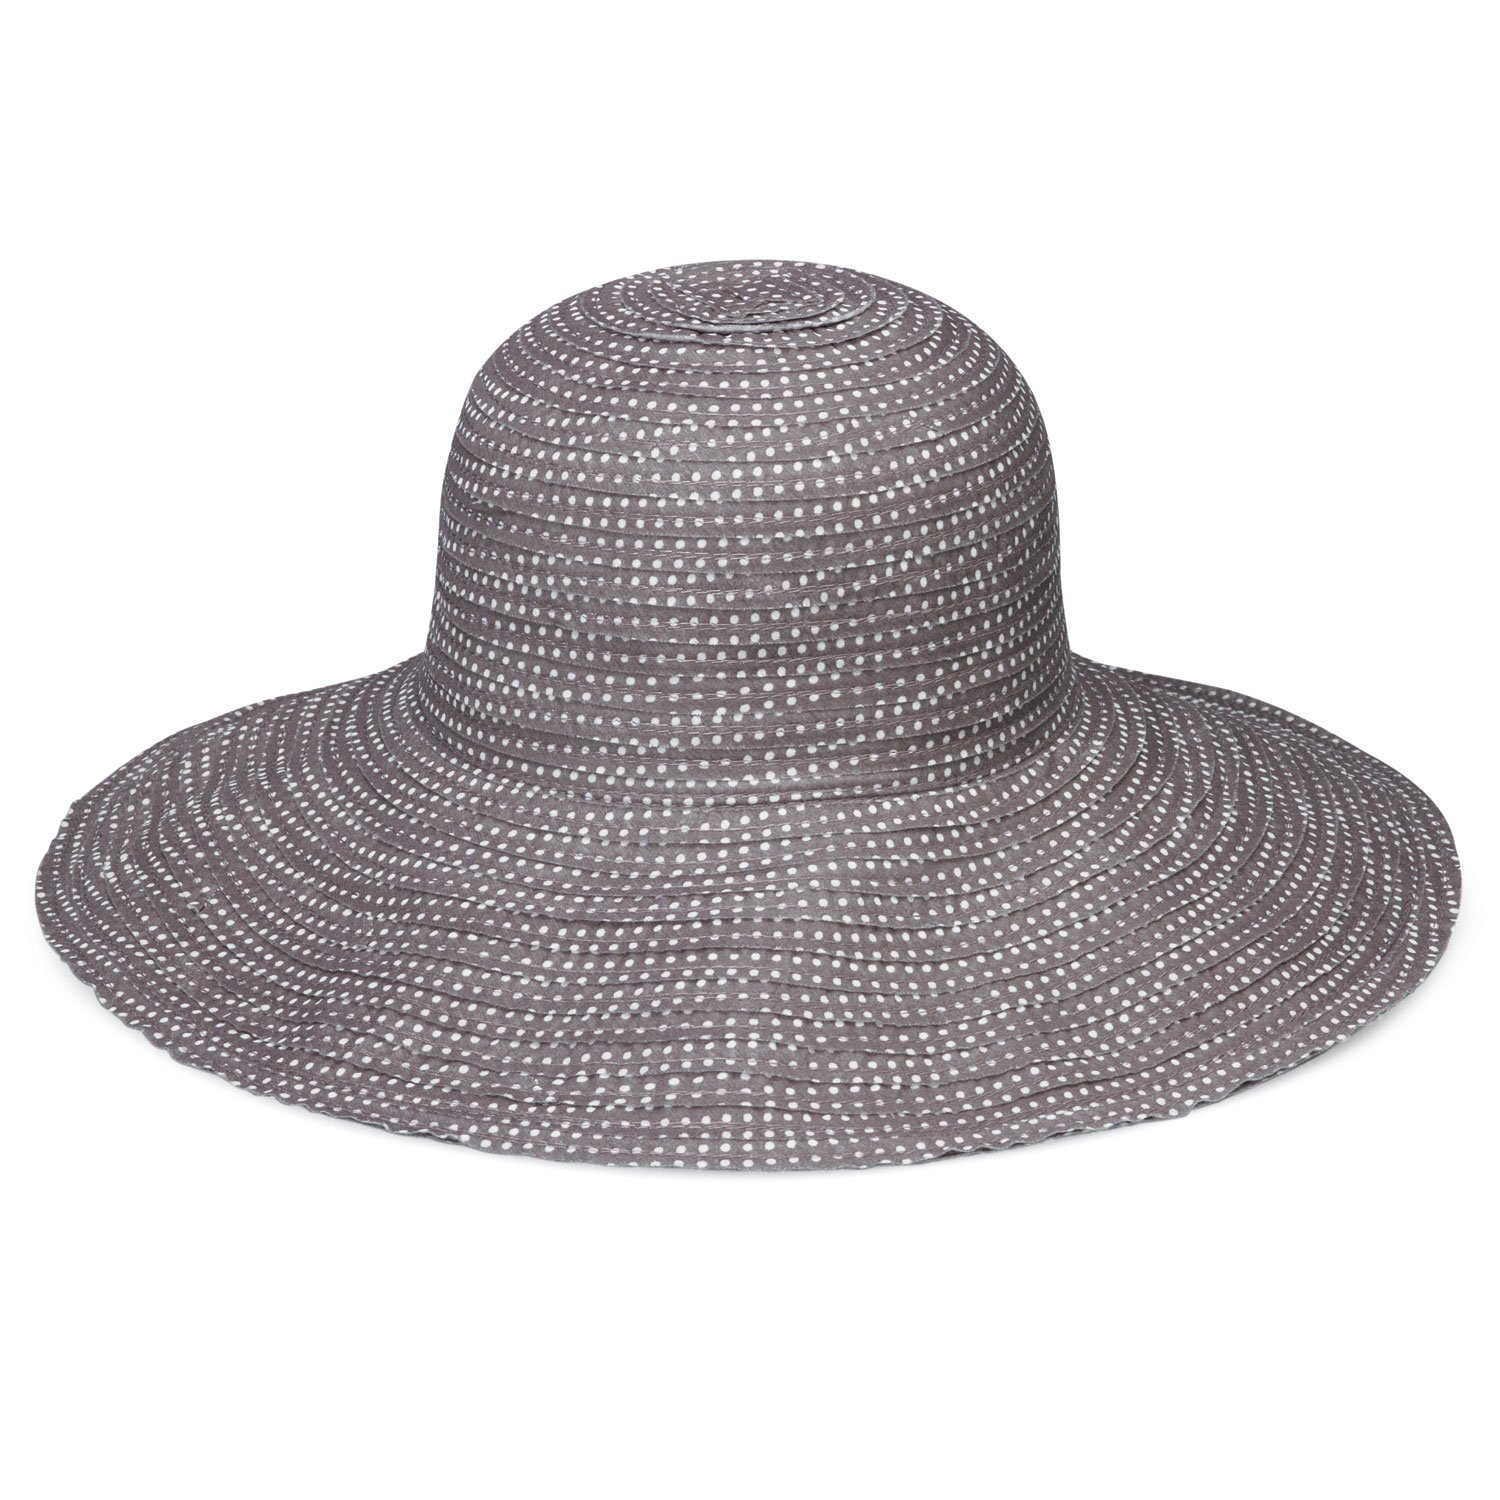 Wallaroo Hat Company Women's Petite Scrunchie Sun Hat – Grey/White Dots – UPF 50+